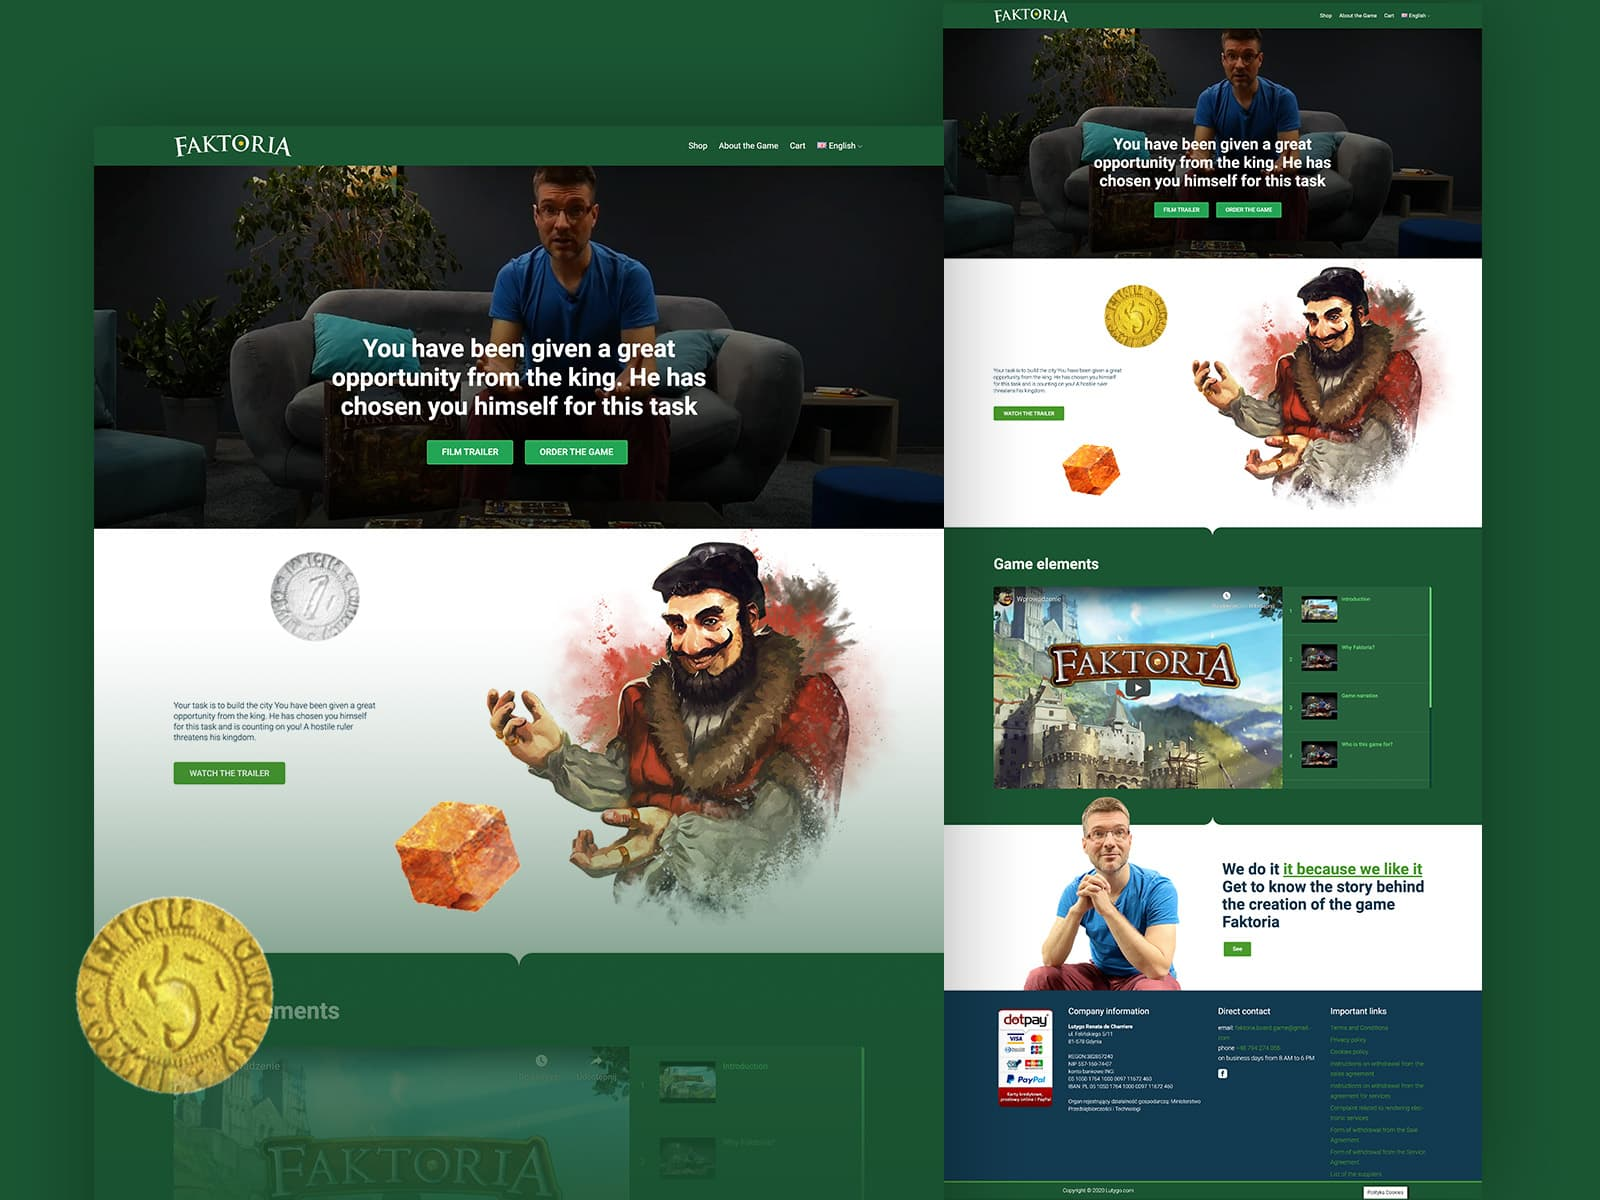 website design and screenshots from the game Faktoria, coin, buyer